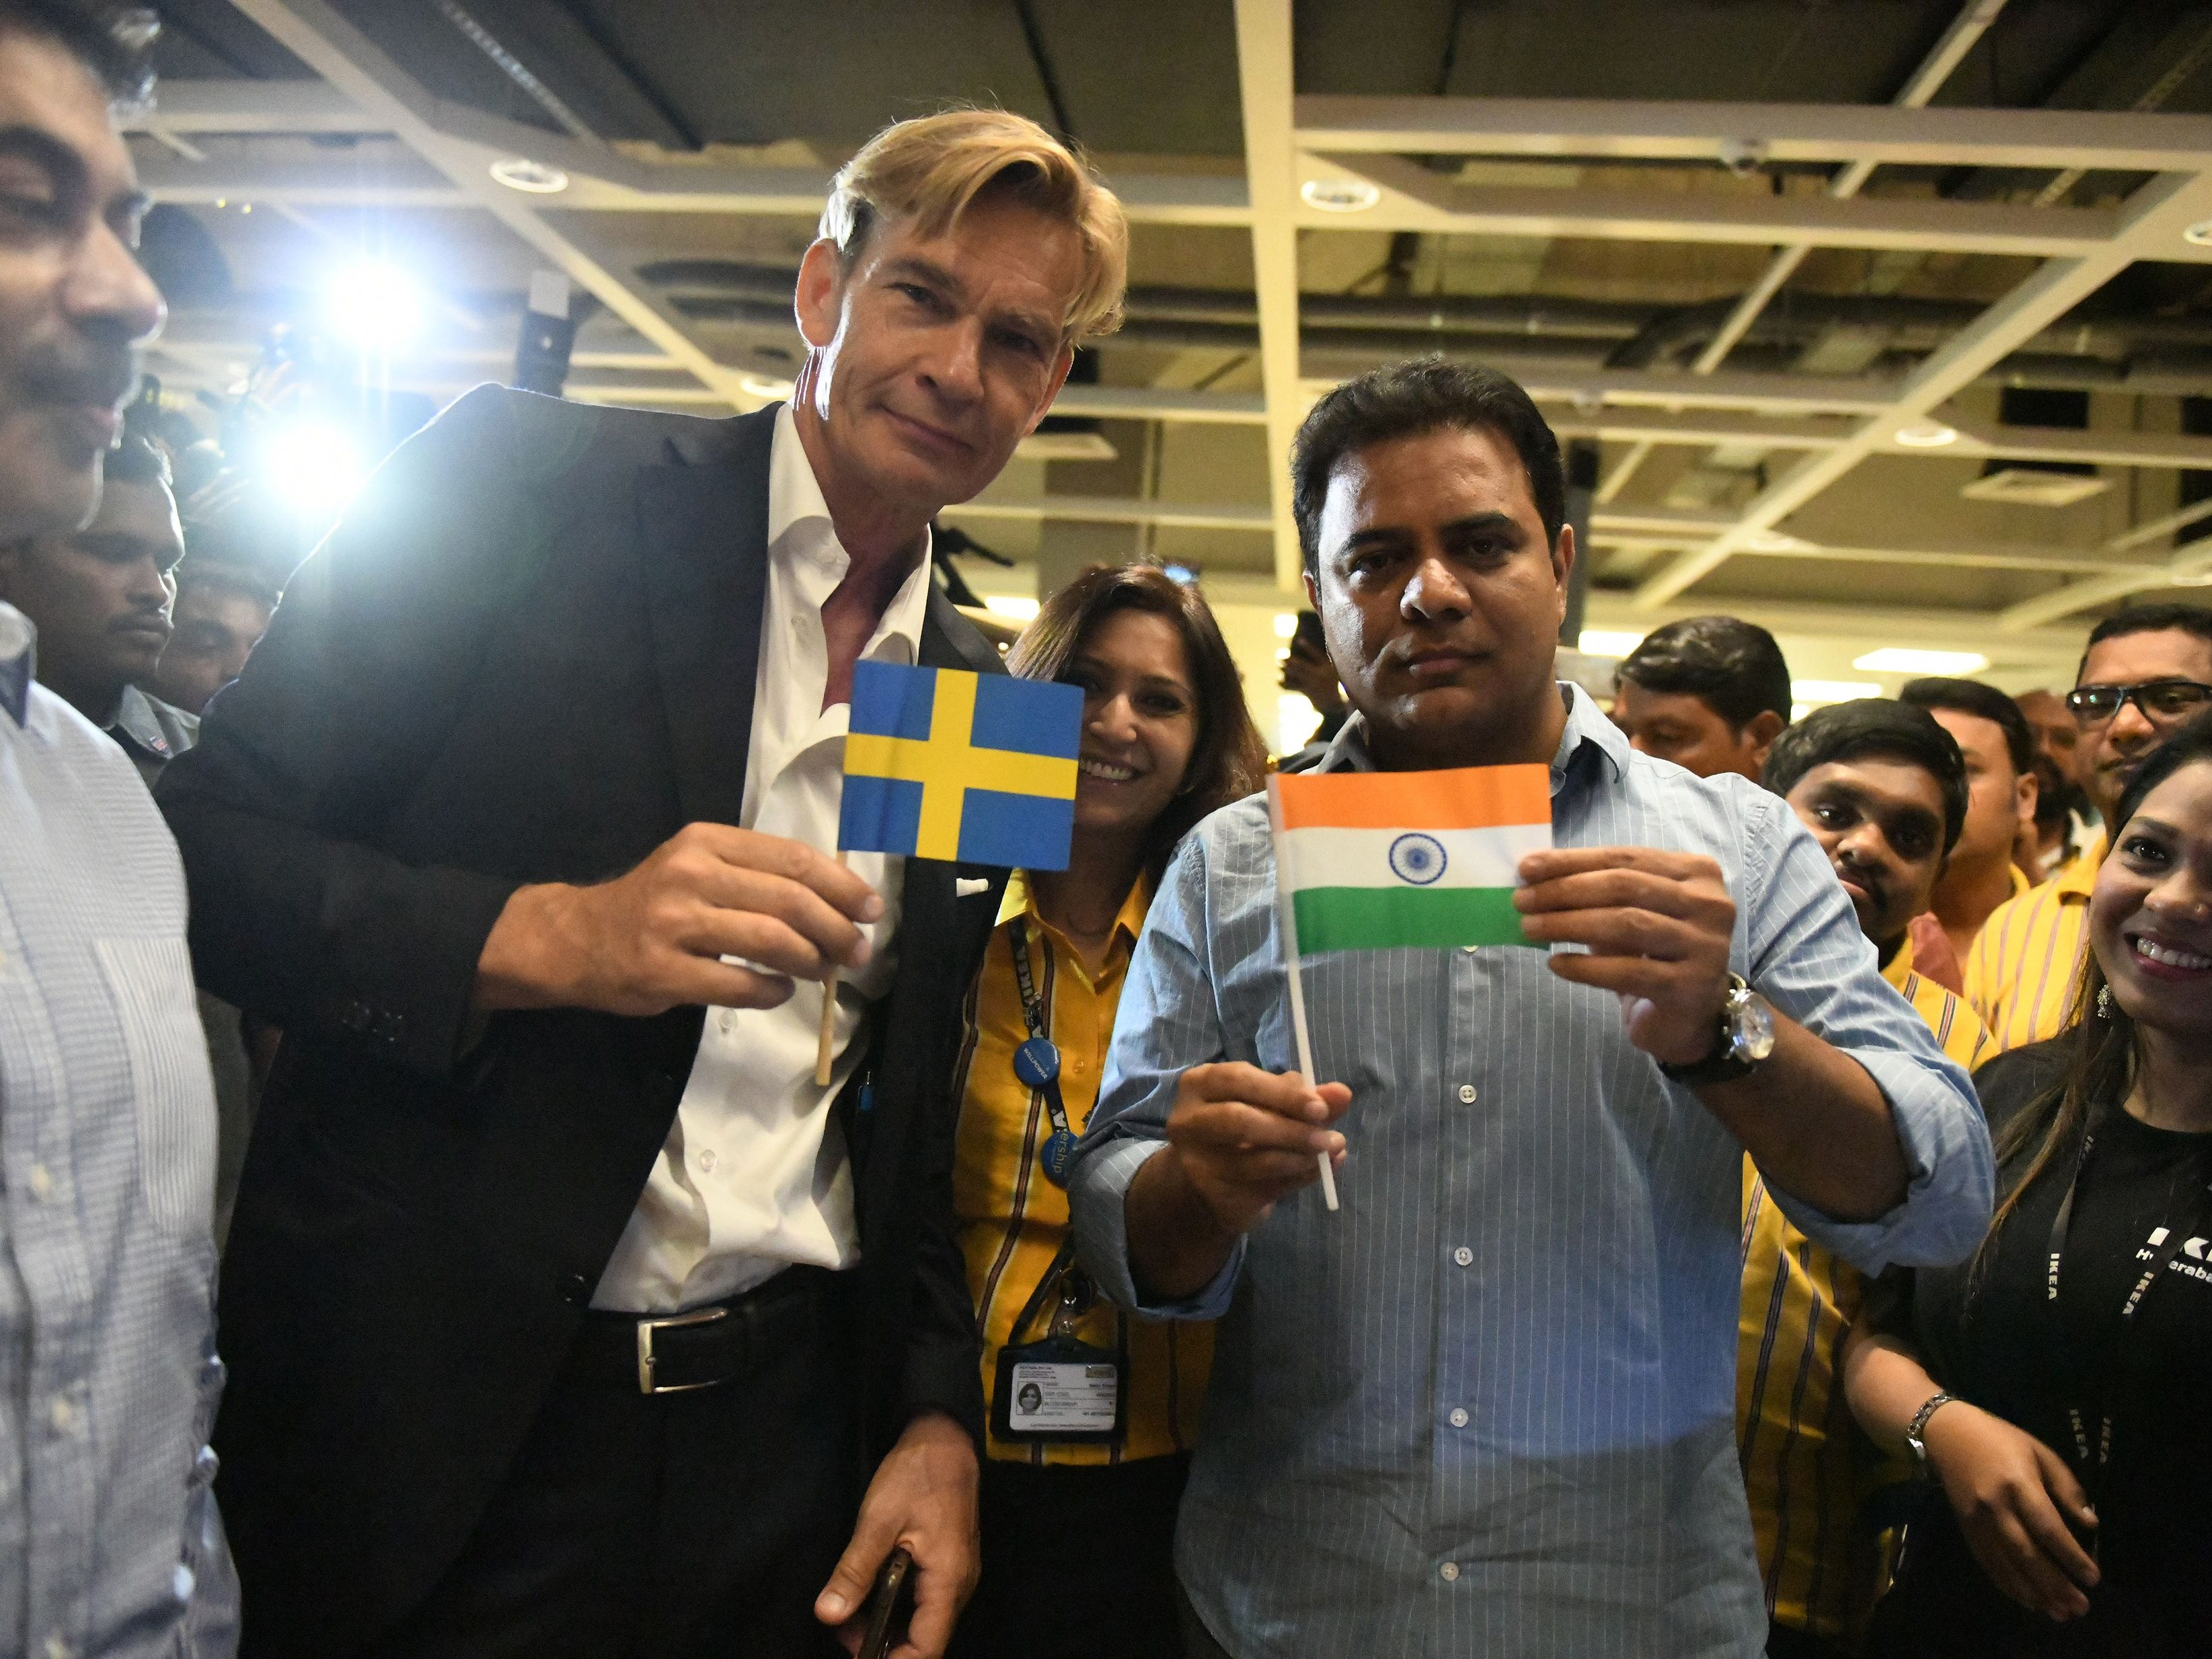 Ambassador of Sweden, Mr Klas Molin, left, with K. Taraka Rama Rao, State Minister of Telangana holds flags of India and Sweden during the opening ceremony of the new IKEA store in Hyderabad on Aug. 9, 2018. Curious customers lay on beds and nestled into armchairs on Aug. 9 as Ikea opened its first Indian outlet, hoping to wow a burgeoning middle class with offerings tweaked to local tastes, including its famous meatballs.